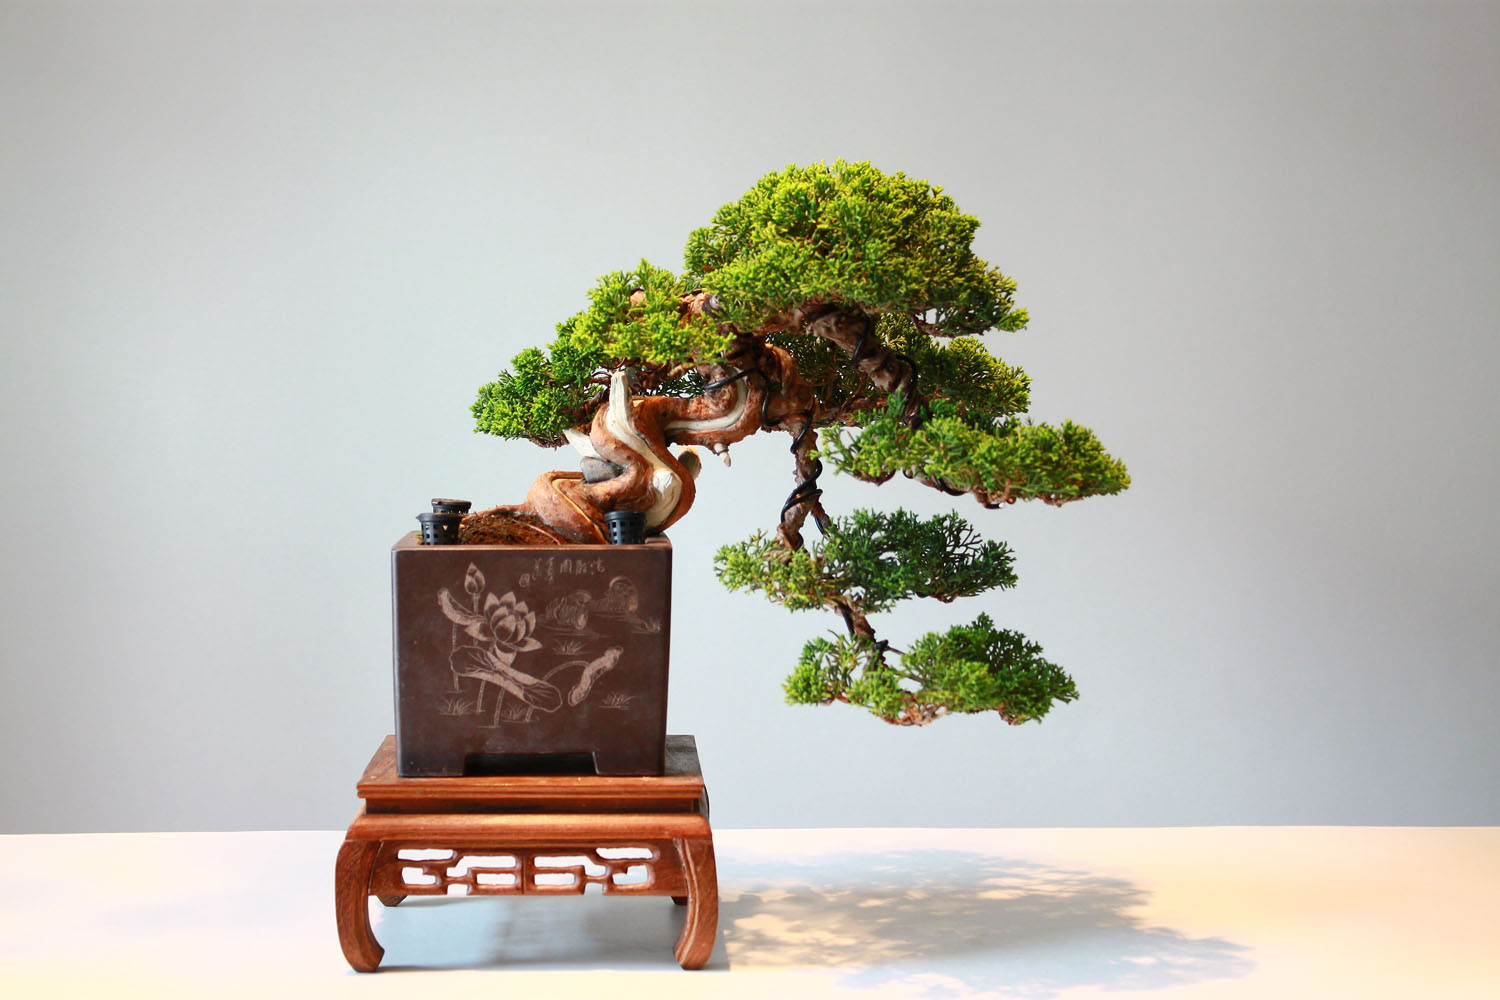 Bonsai Tree One Of The Most Popular Symbols Of Japan